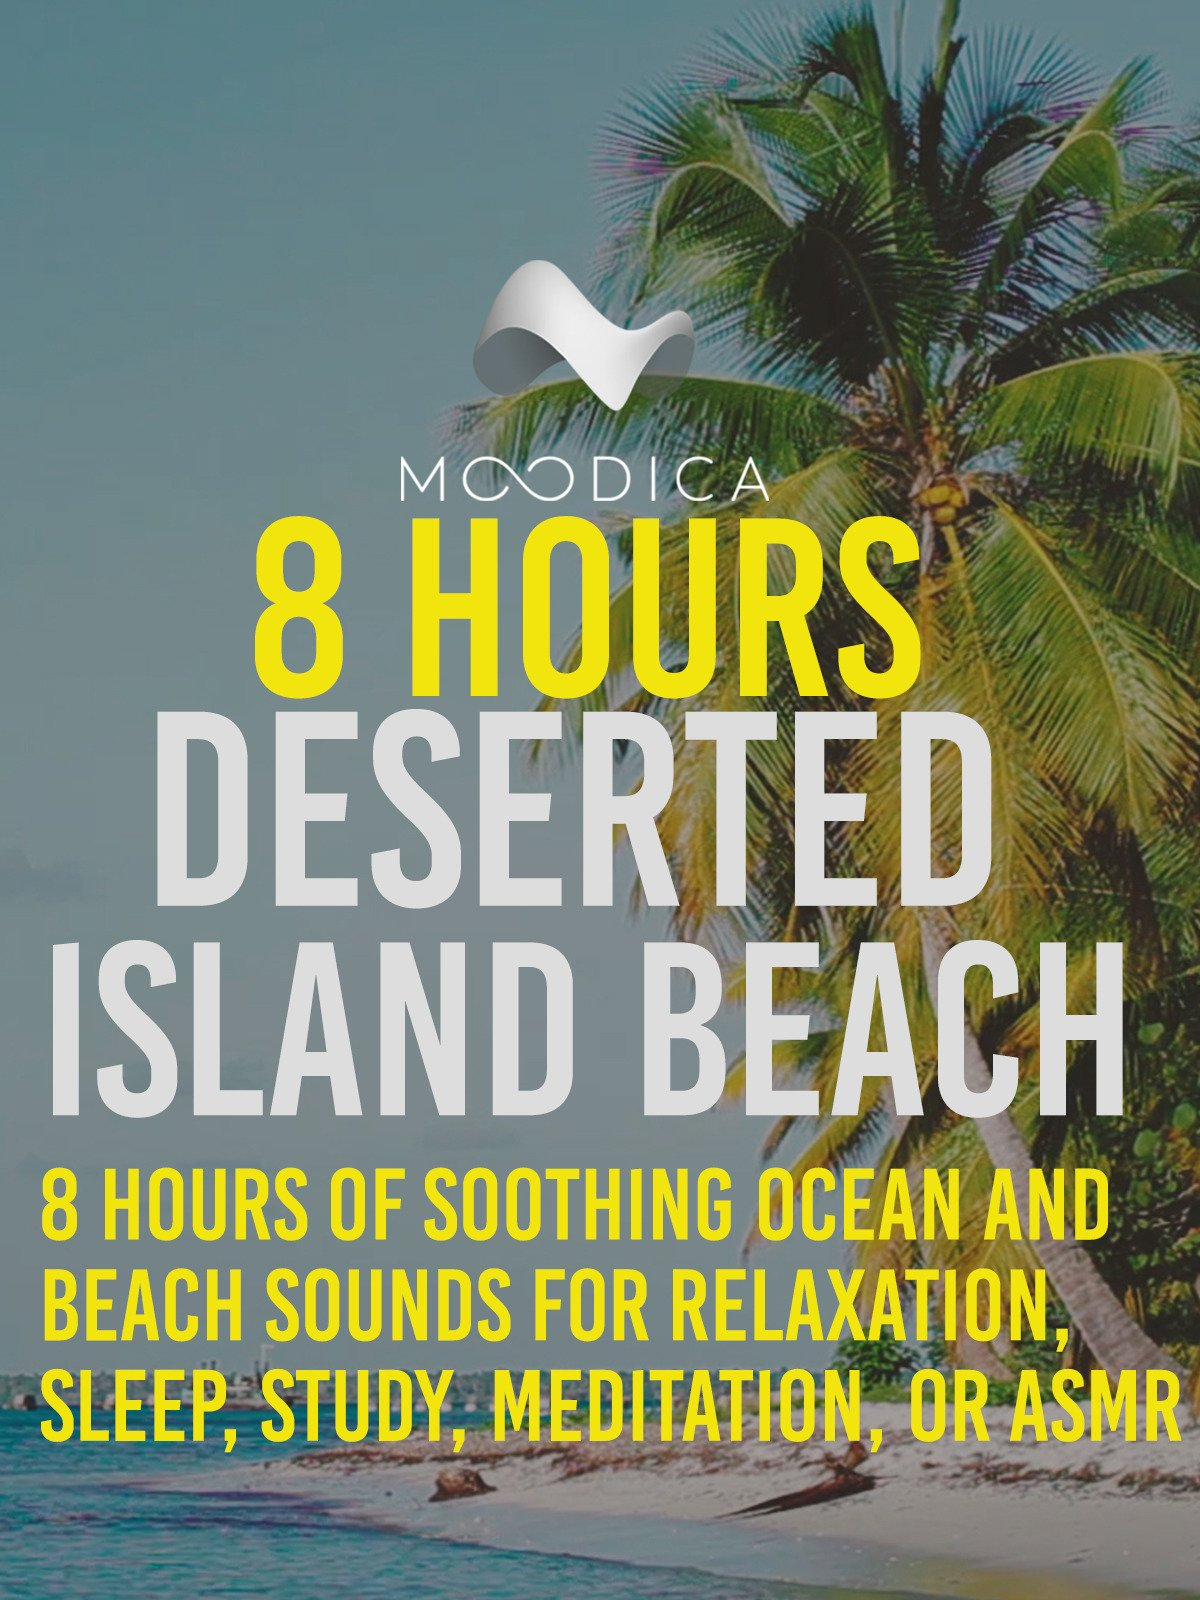 8 Hours: Deserted Island Beach: 8 Hours of Soothing Ocean and Beach Sounds for Relaxation, Sleep, Study, Meditation, or ASMR